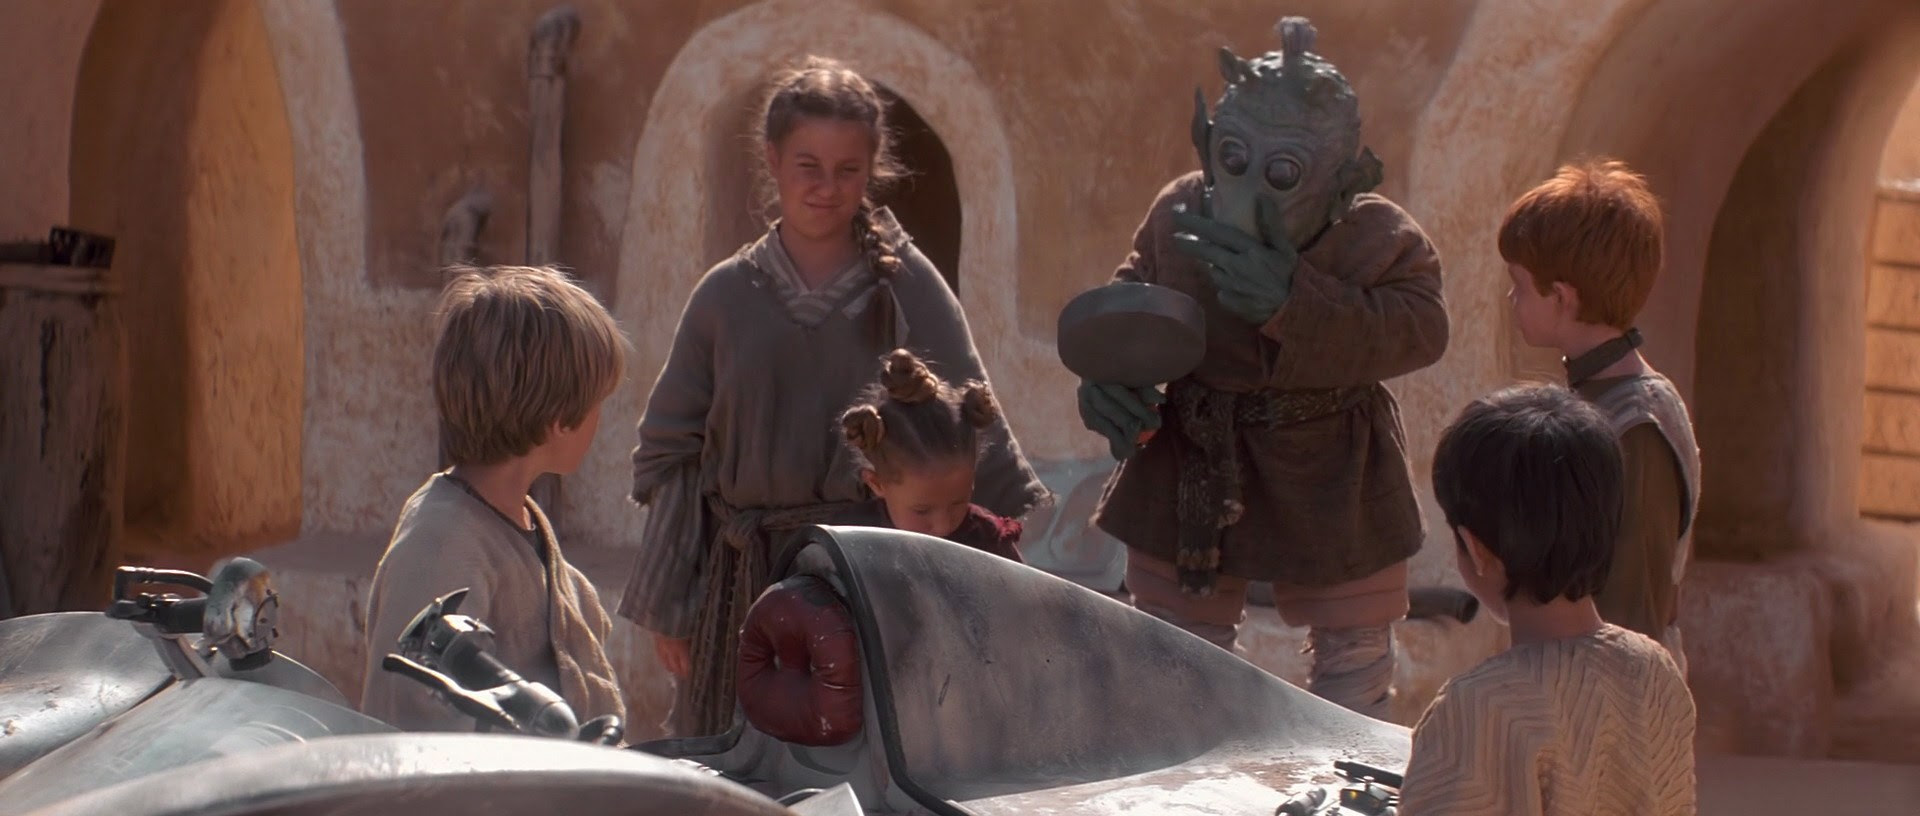 Finding the Joy in The Phantom Menace | Anakin and His Angel